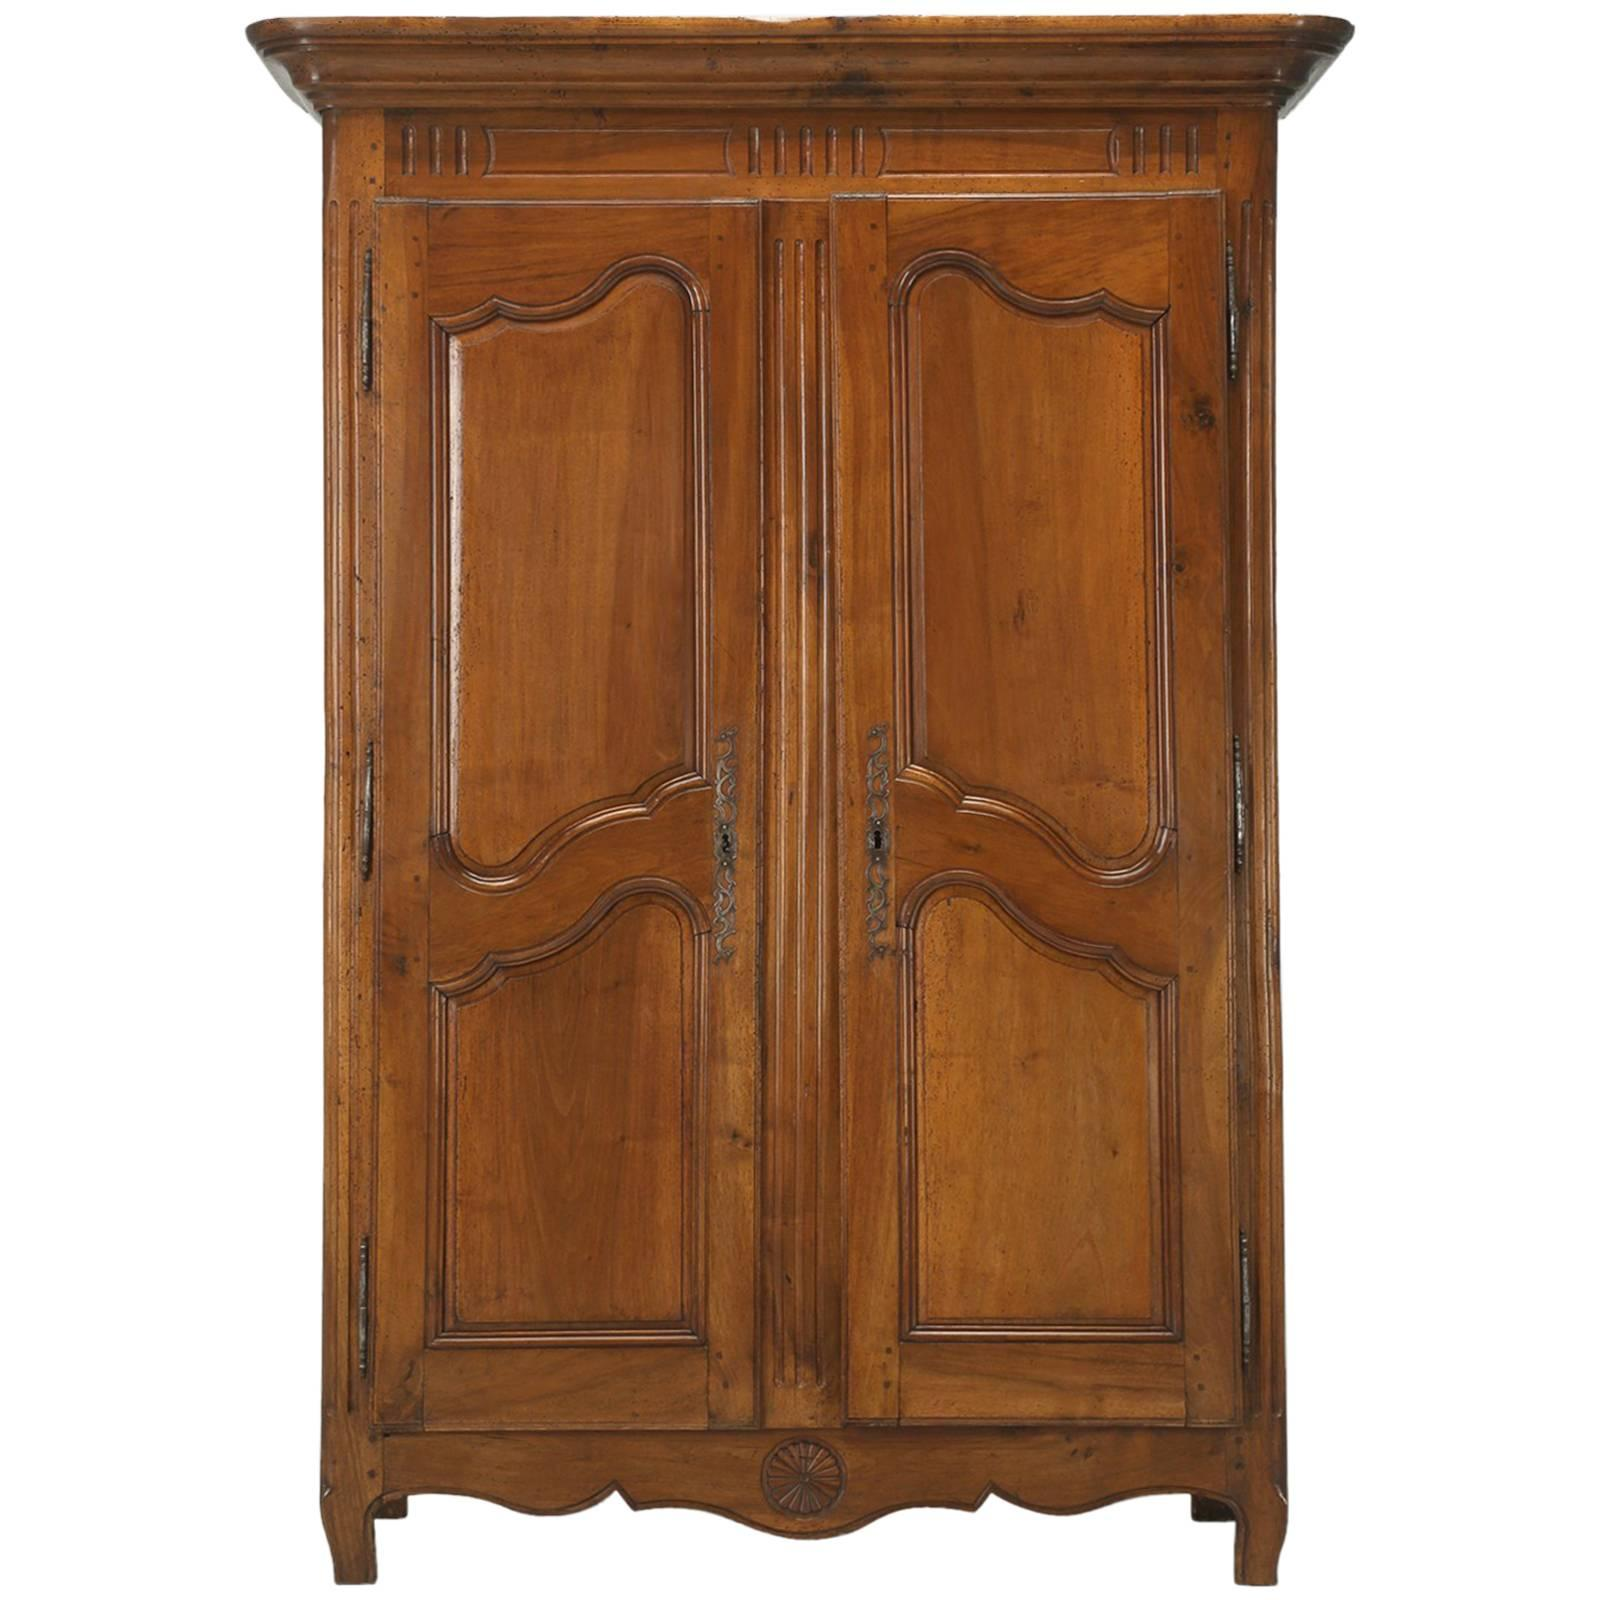 Antique French Armoire In Solid Walnut From The Toulouse Area, Circa 1775  For Sale